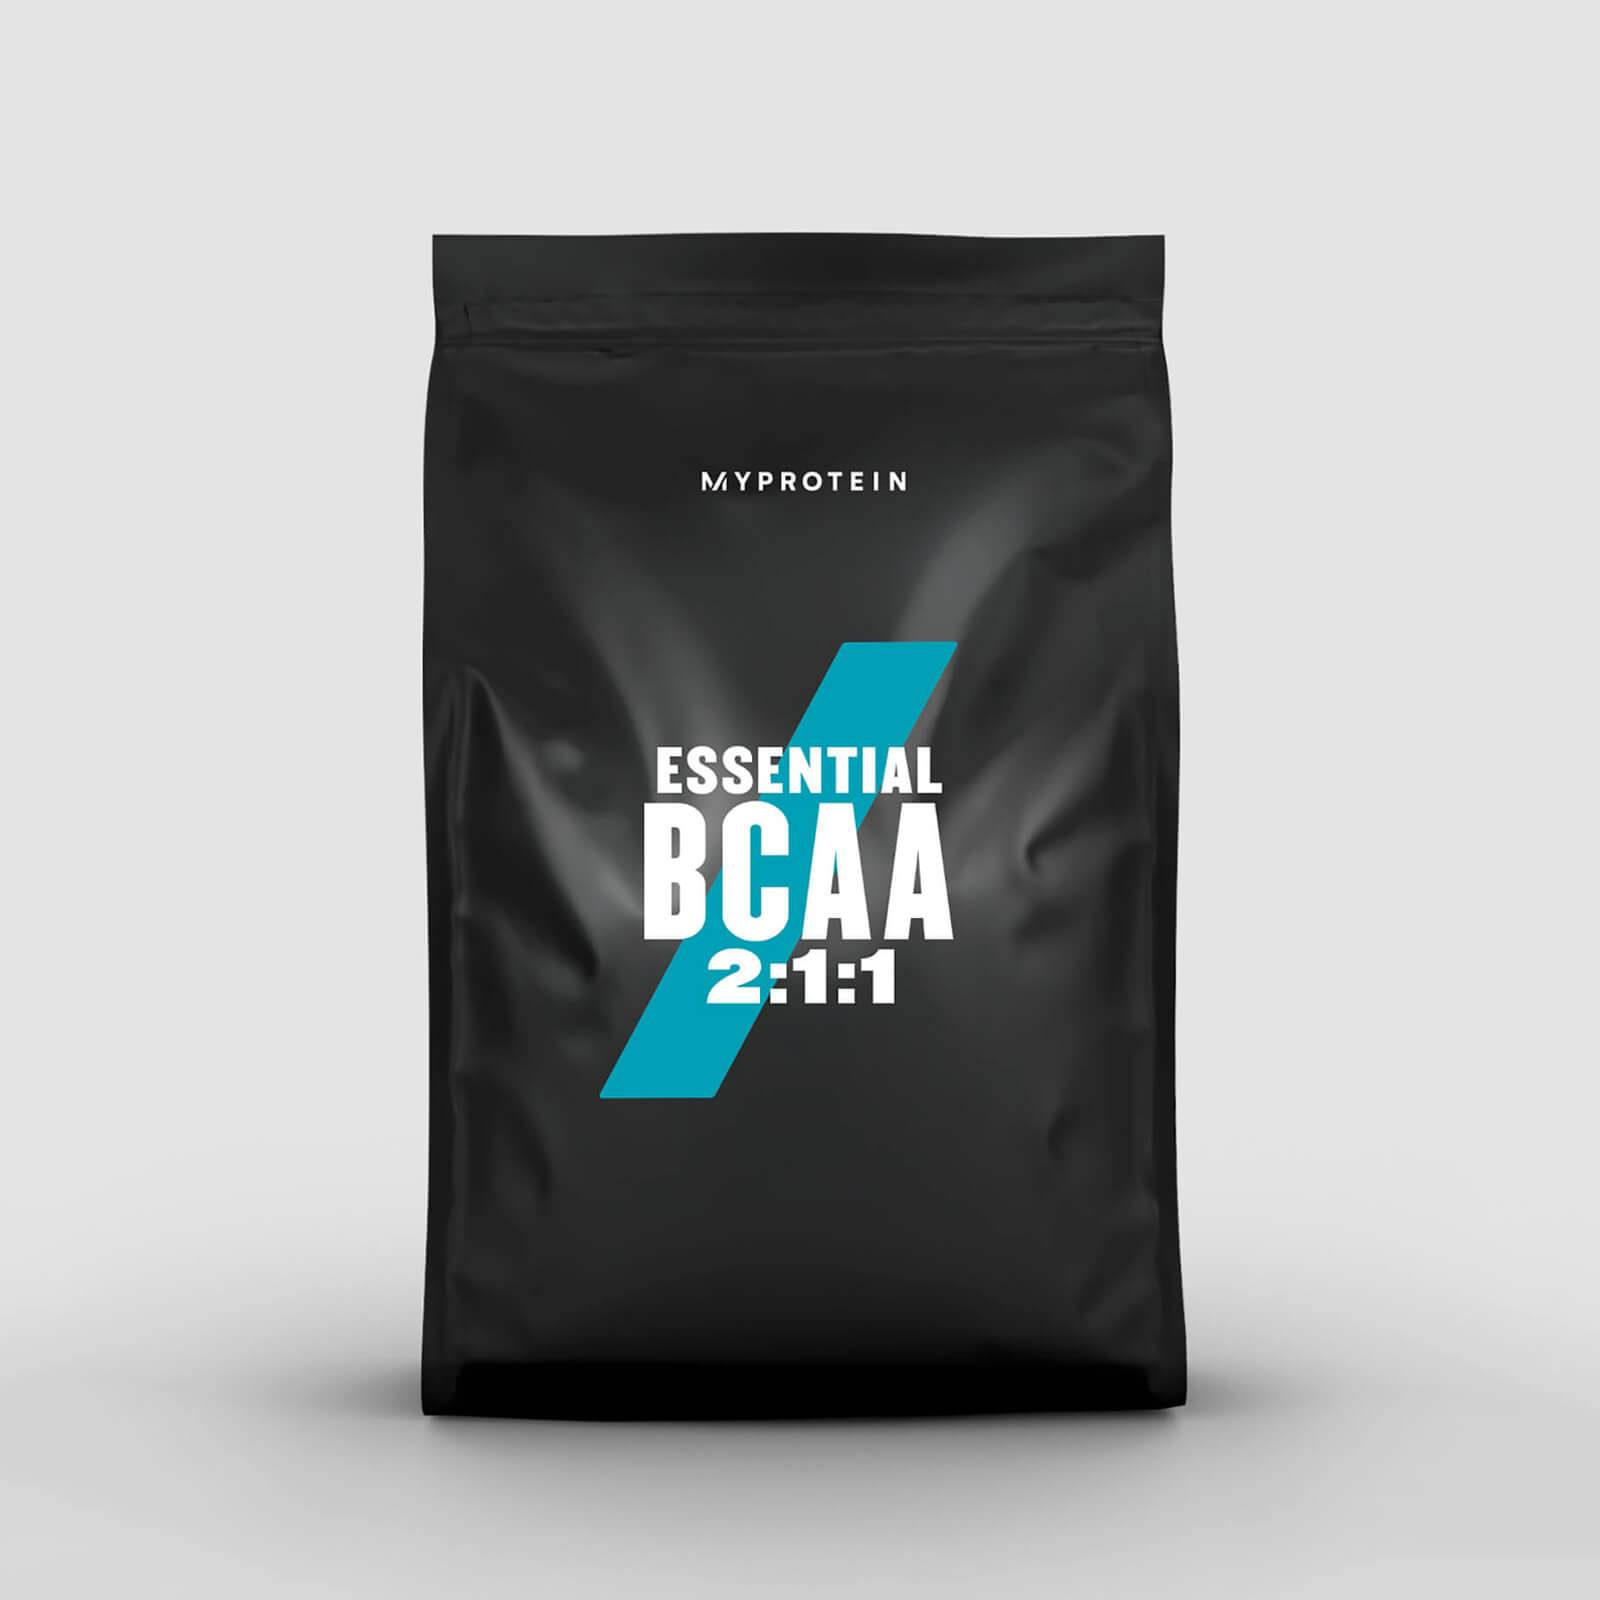 Myprotein Essential BCAA 2:1:1 - Gin & Tonic - 500g - Gin and Tonic